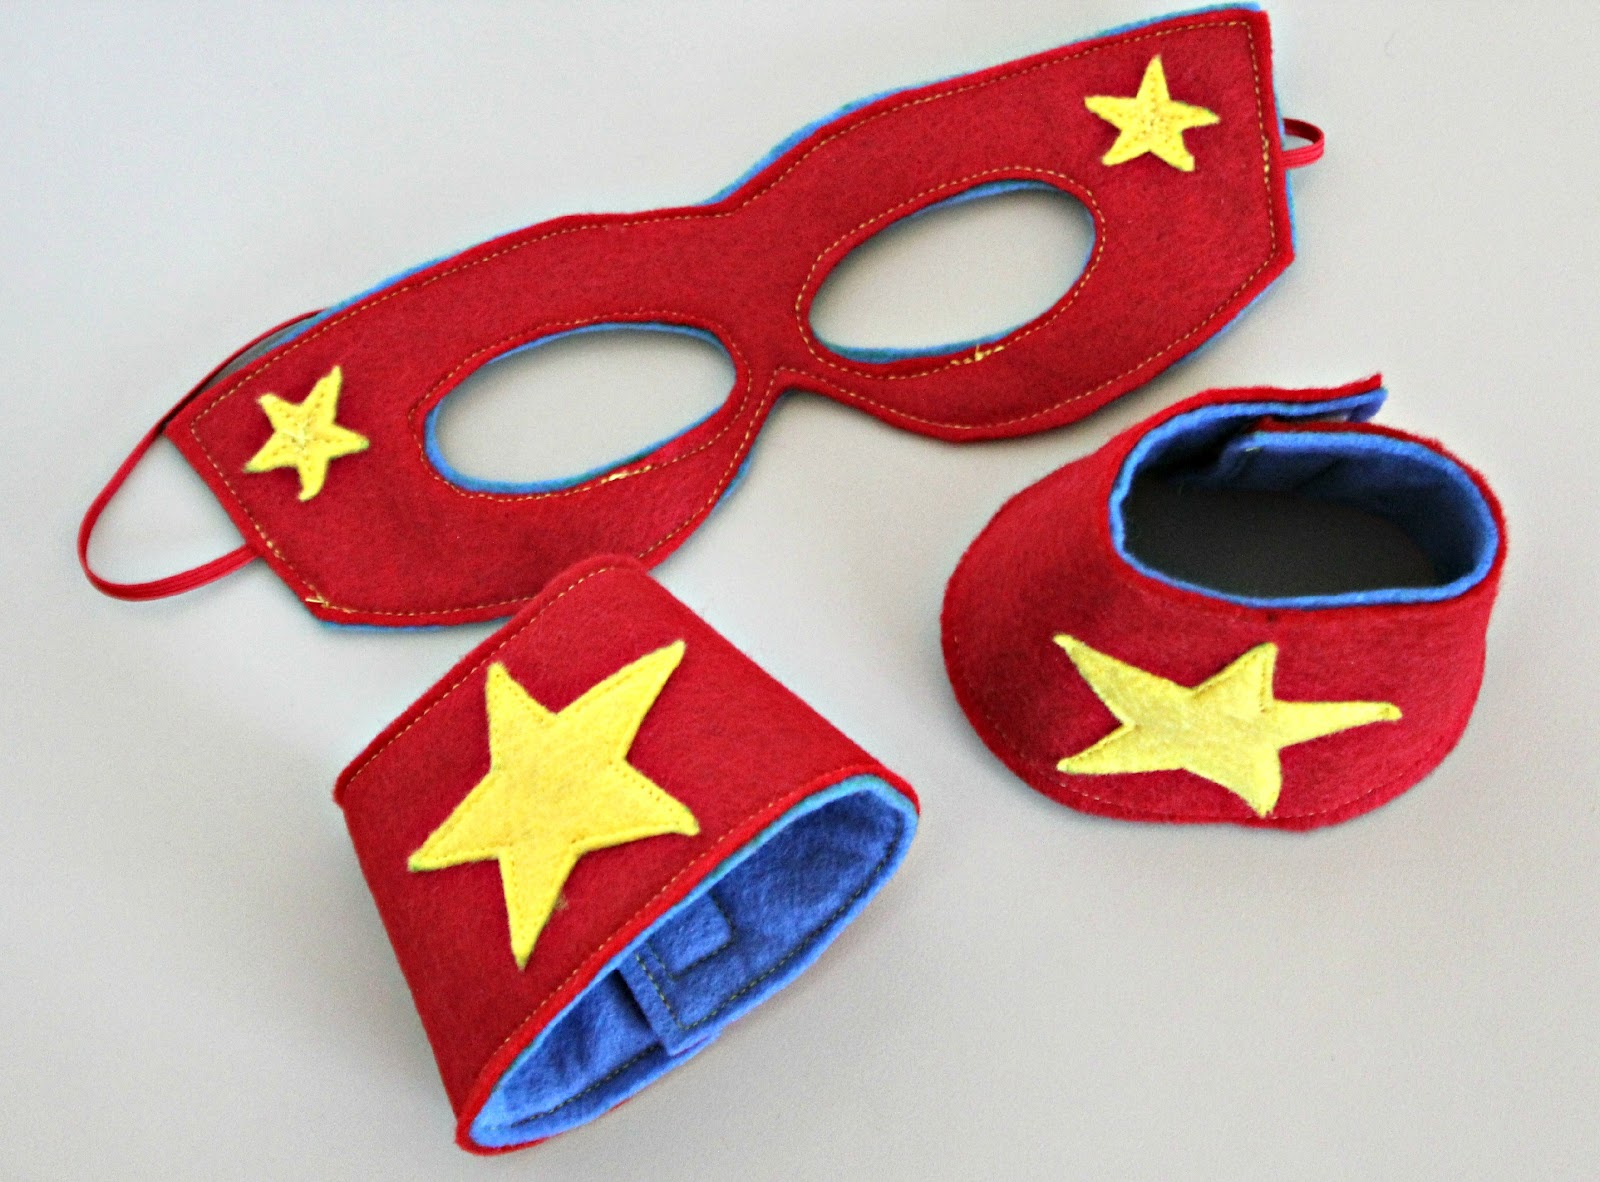 RisC Handmade: Superhero Mask and Cuffs